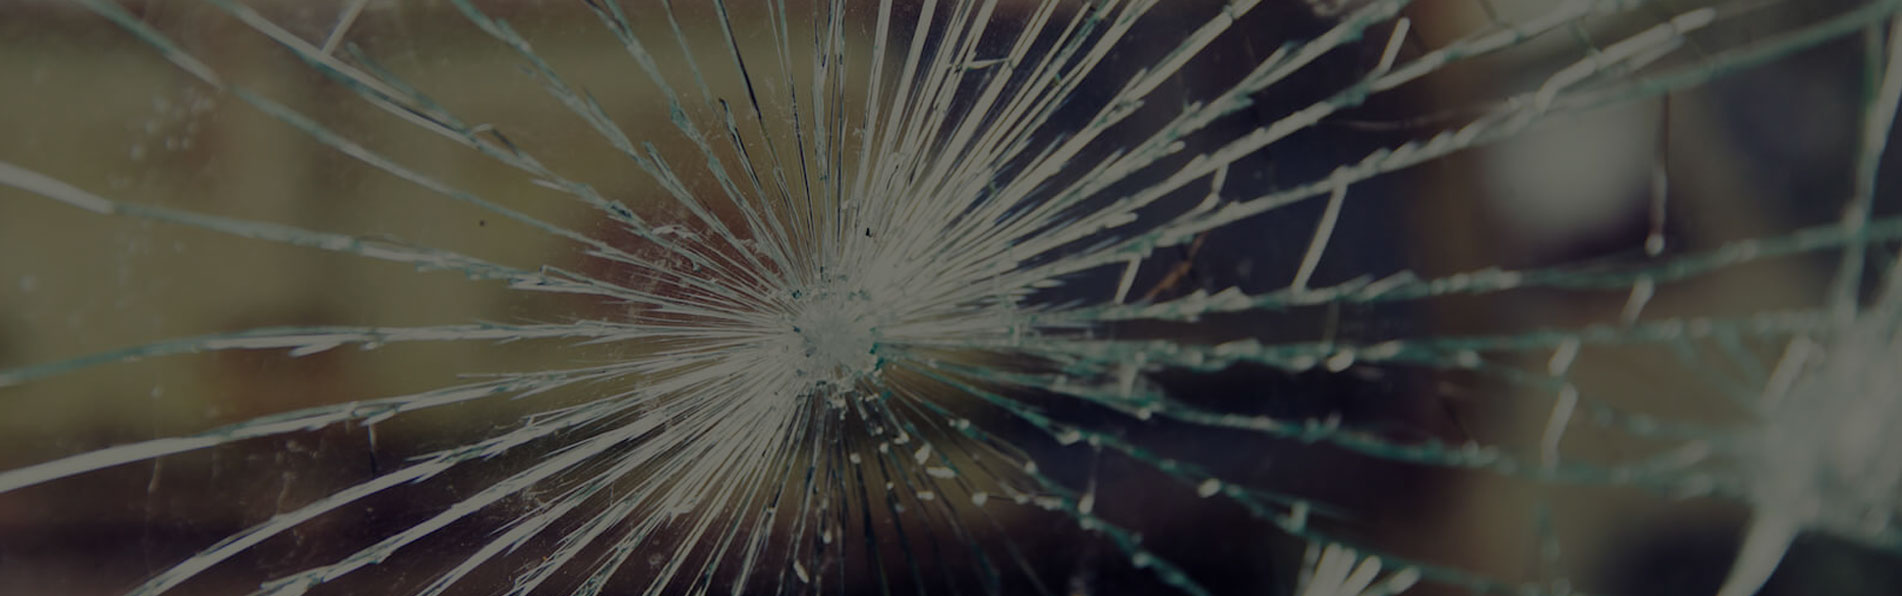 Safety Laminated Glass Auckland